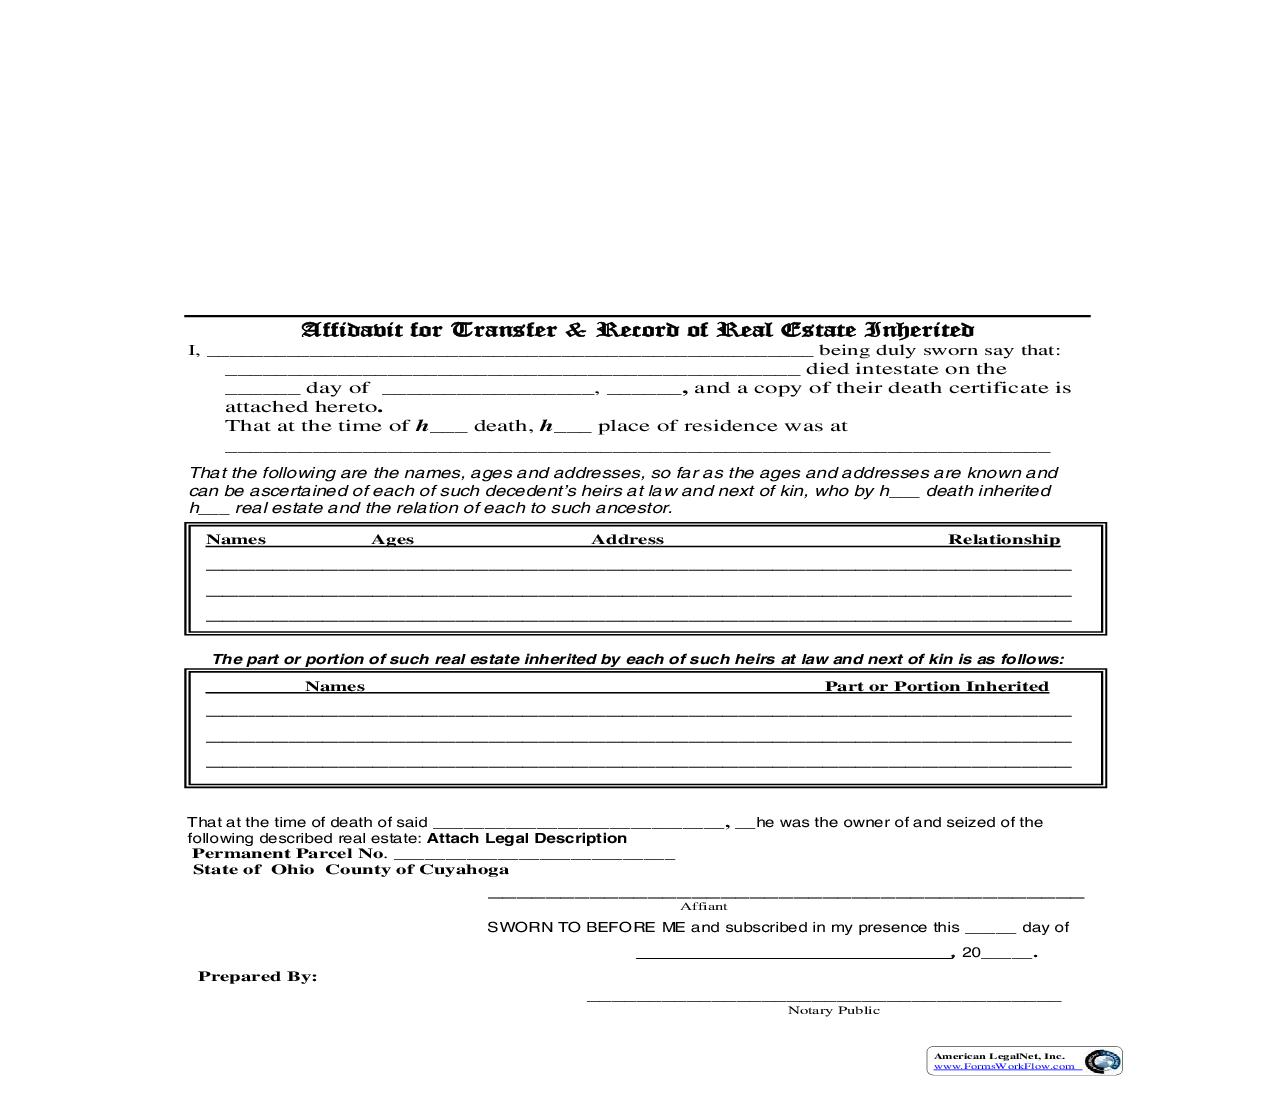 Cuyahoga County Affidavit For Transfer And Record Of Real Estate Inherited | Pdf Fpdf Doc Docx | Ohio